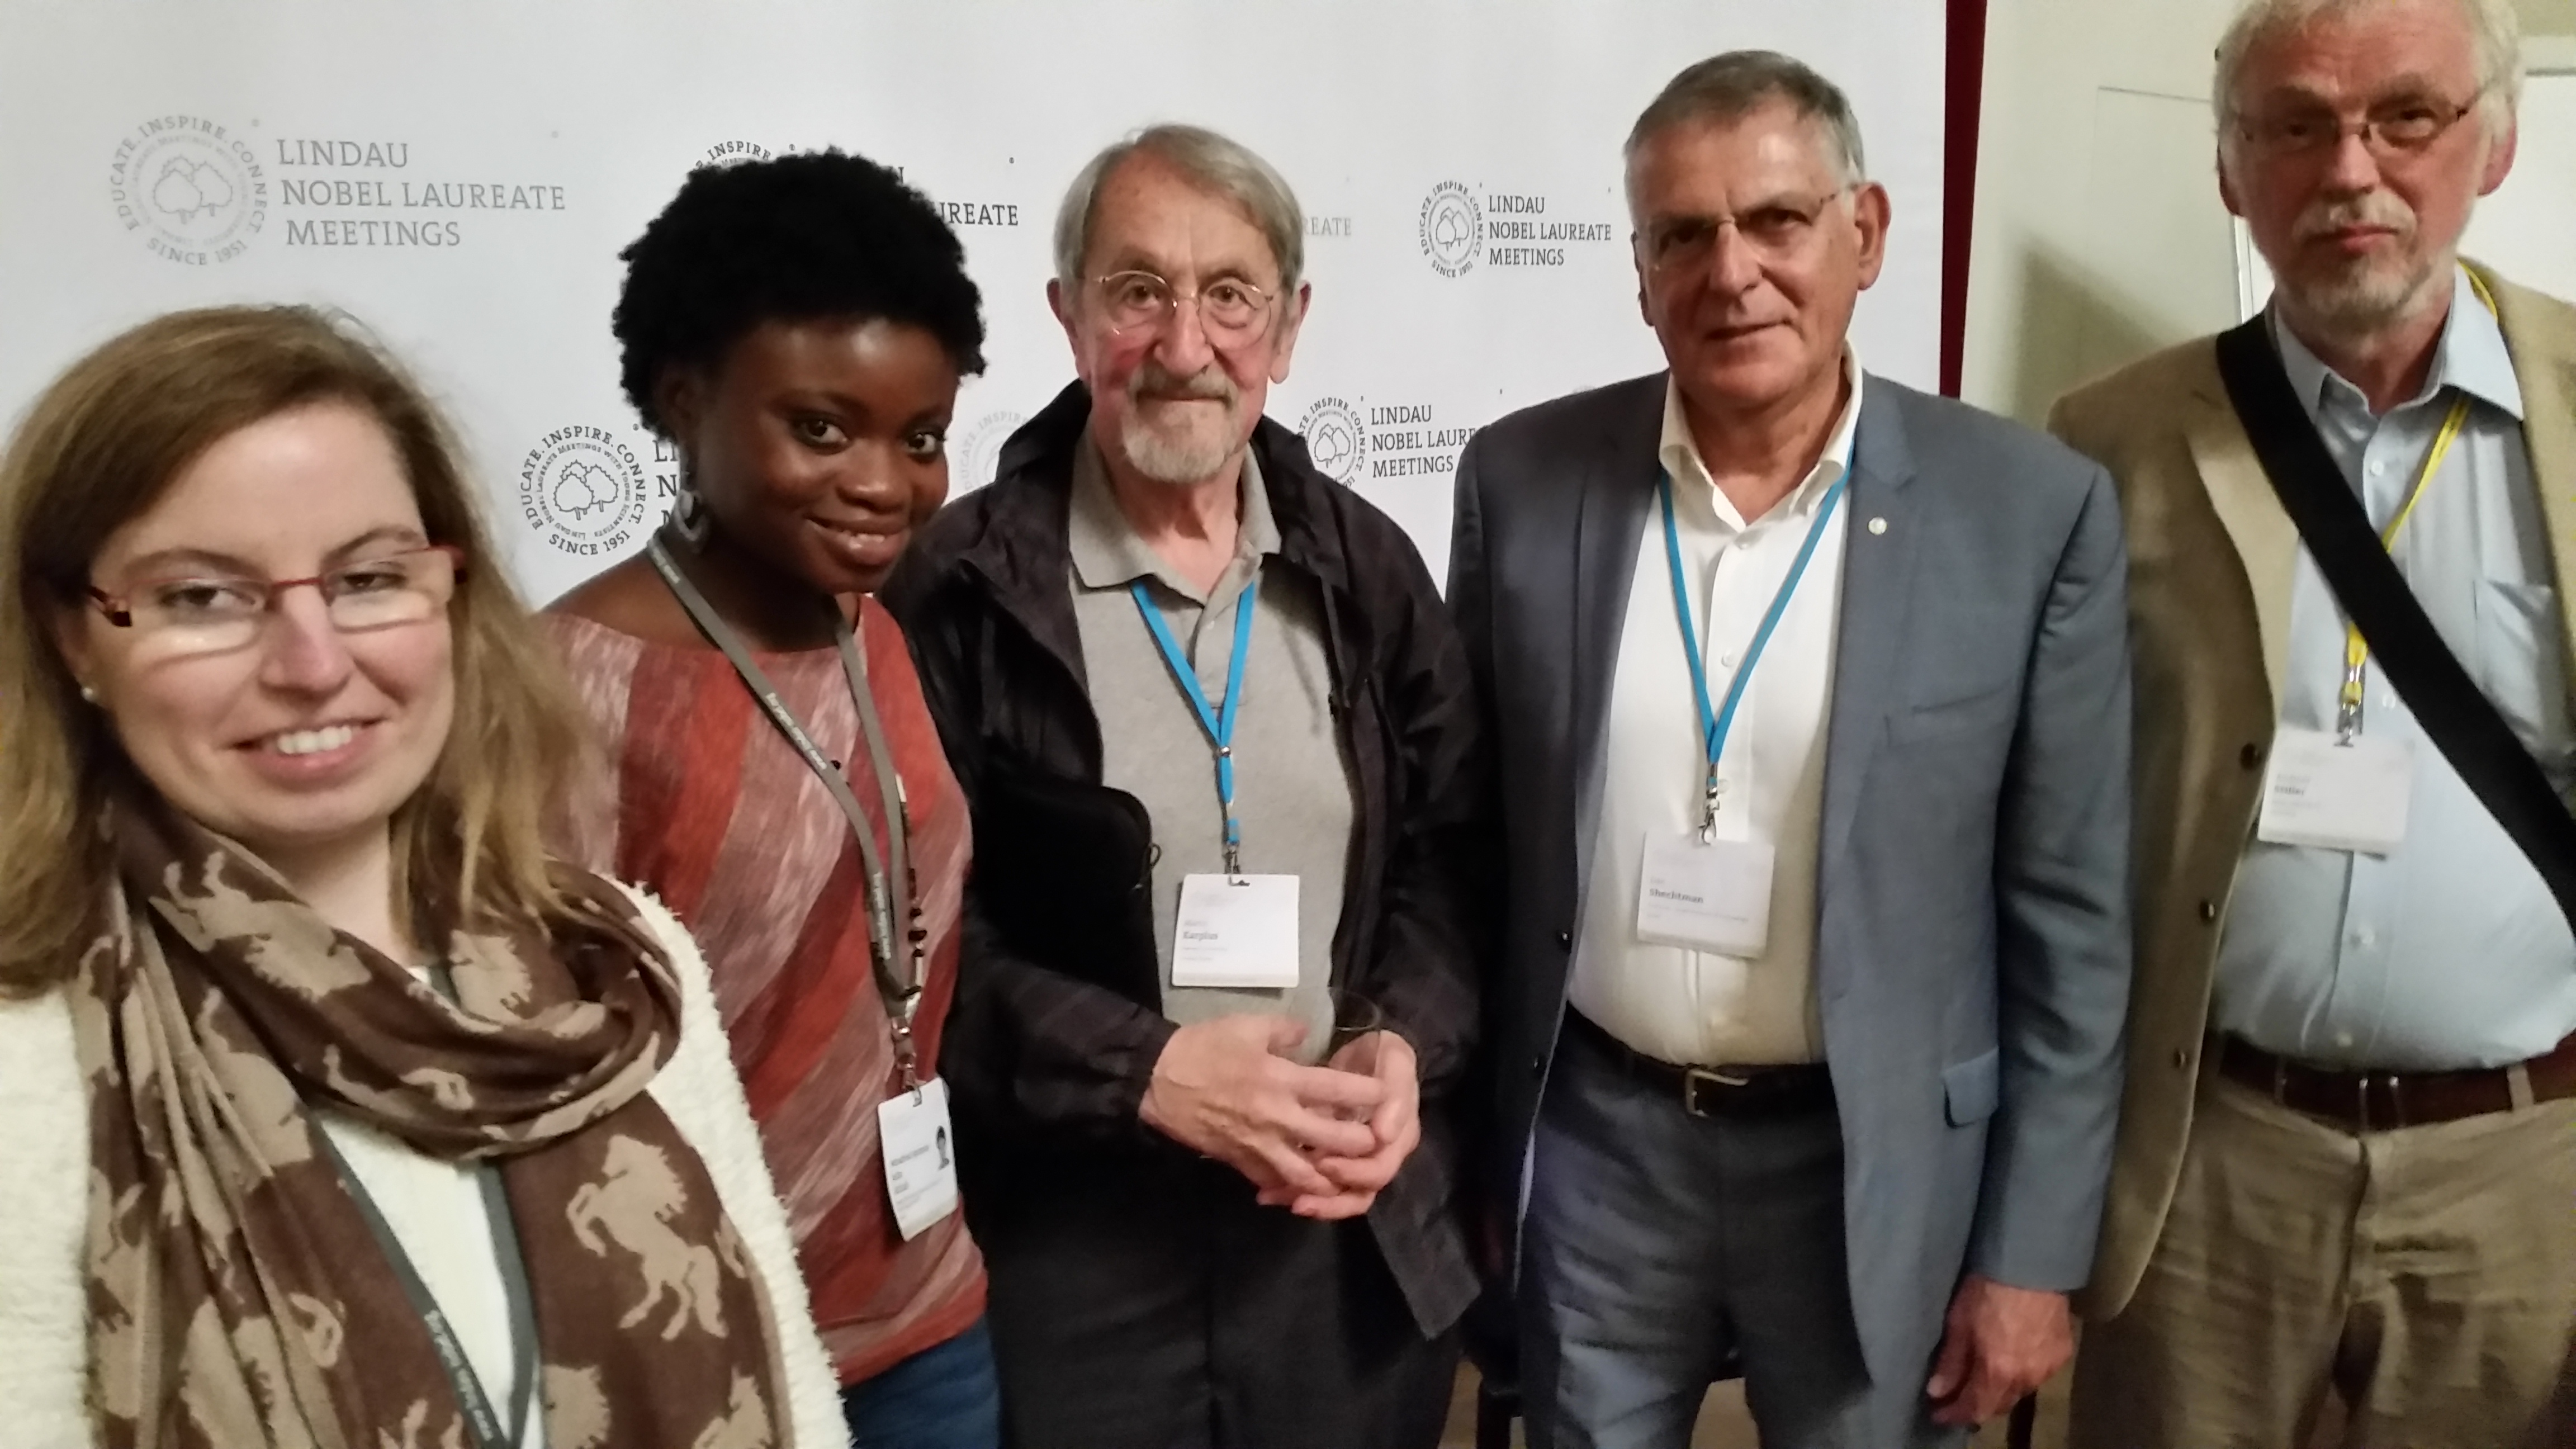 Winifred (second from left) with Nobel Laureates